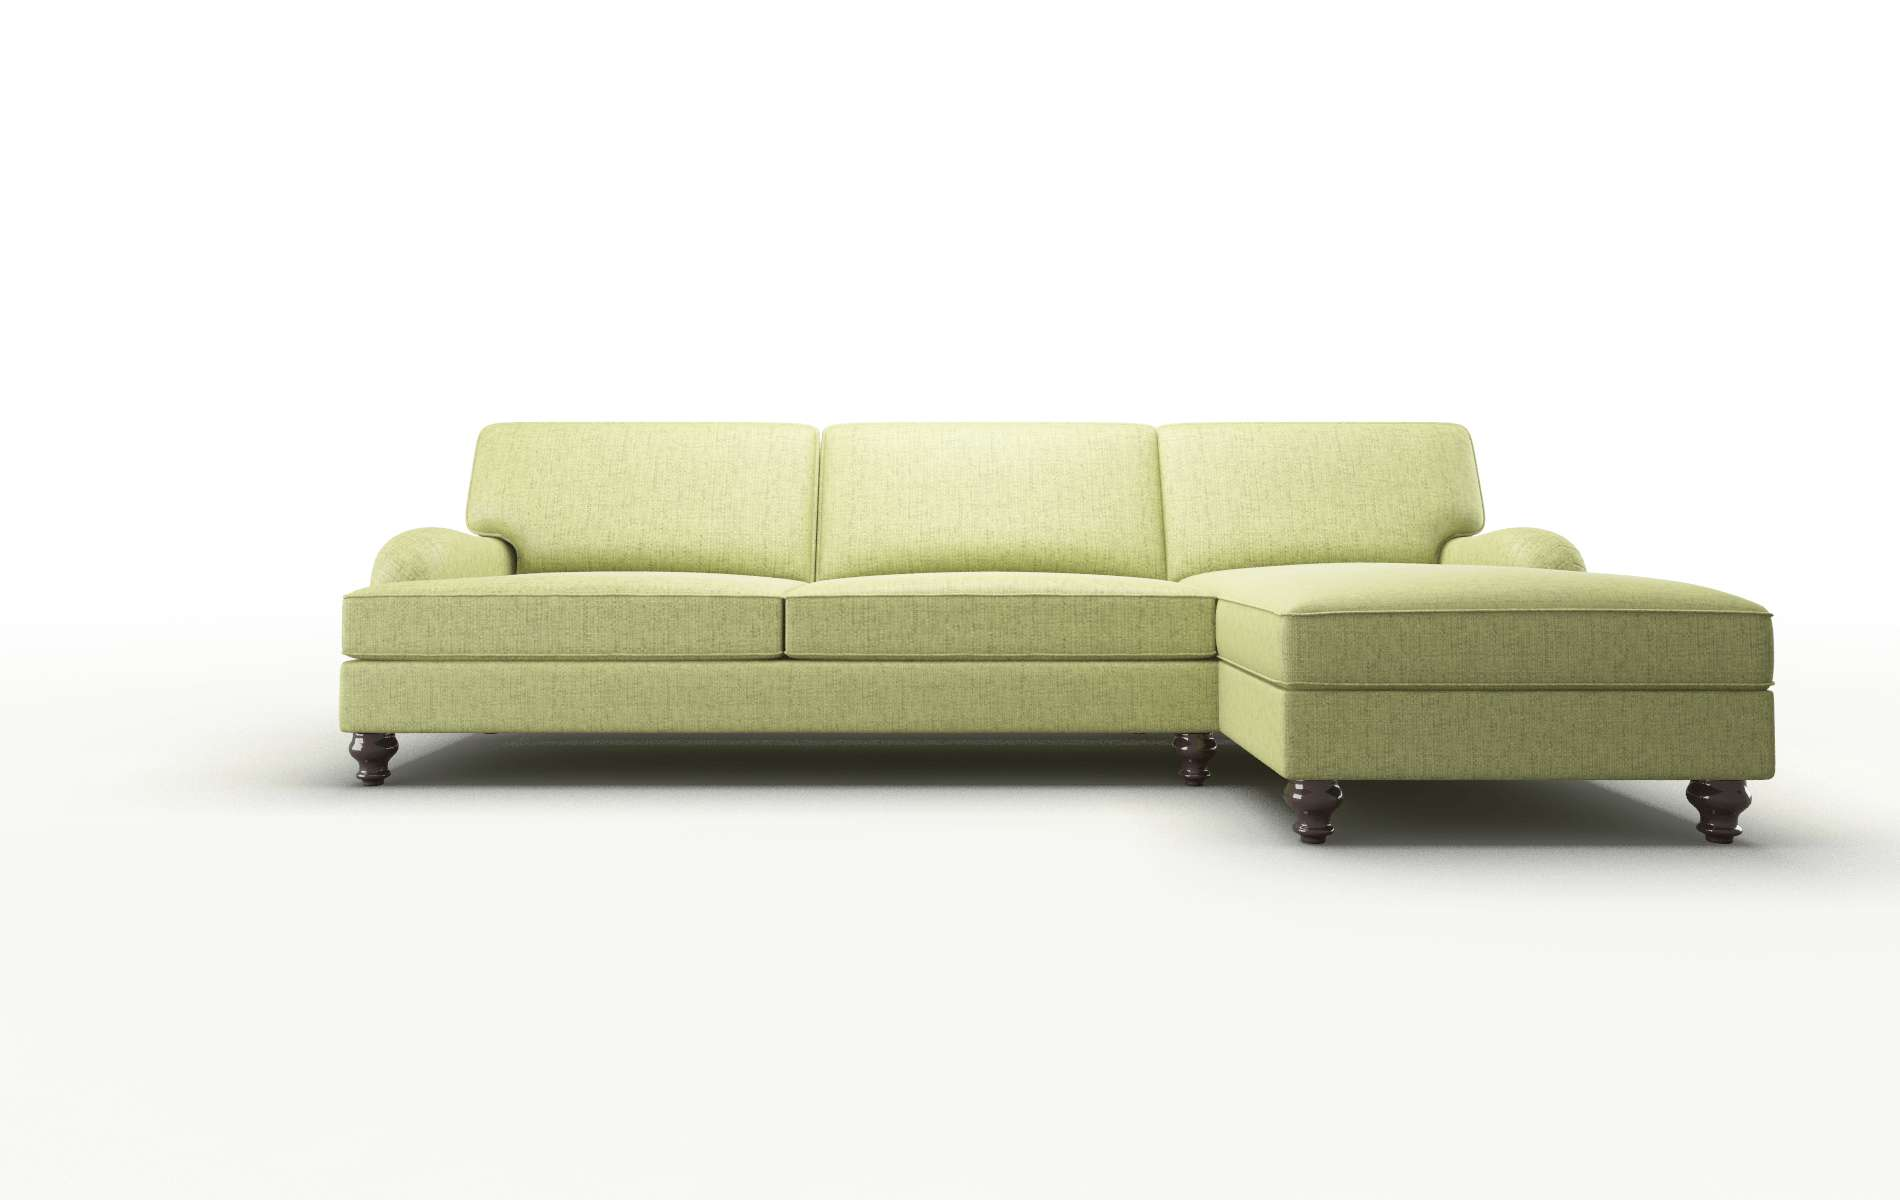 Hamilton Notion Appletini chair espresso legs